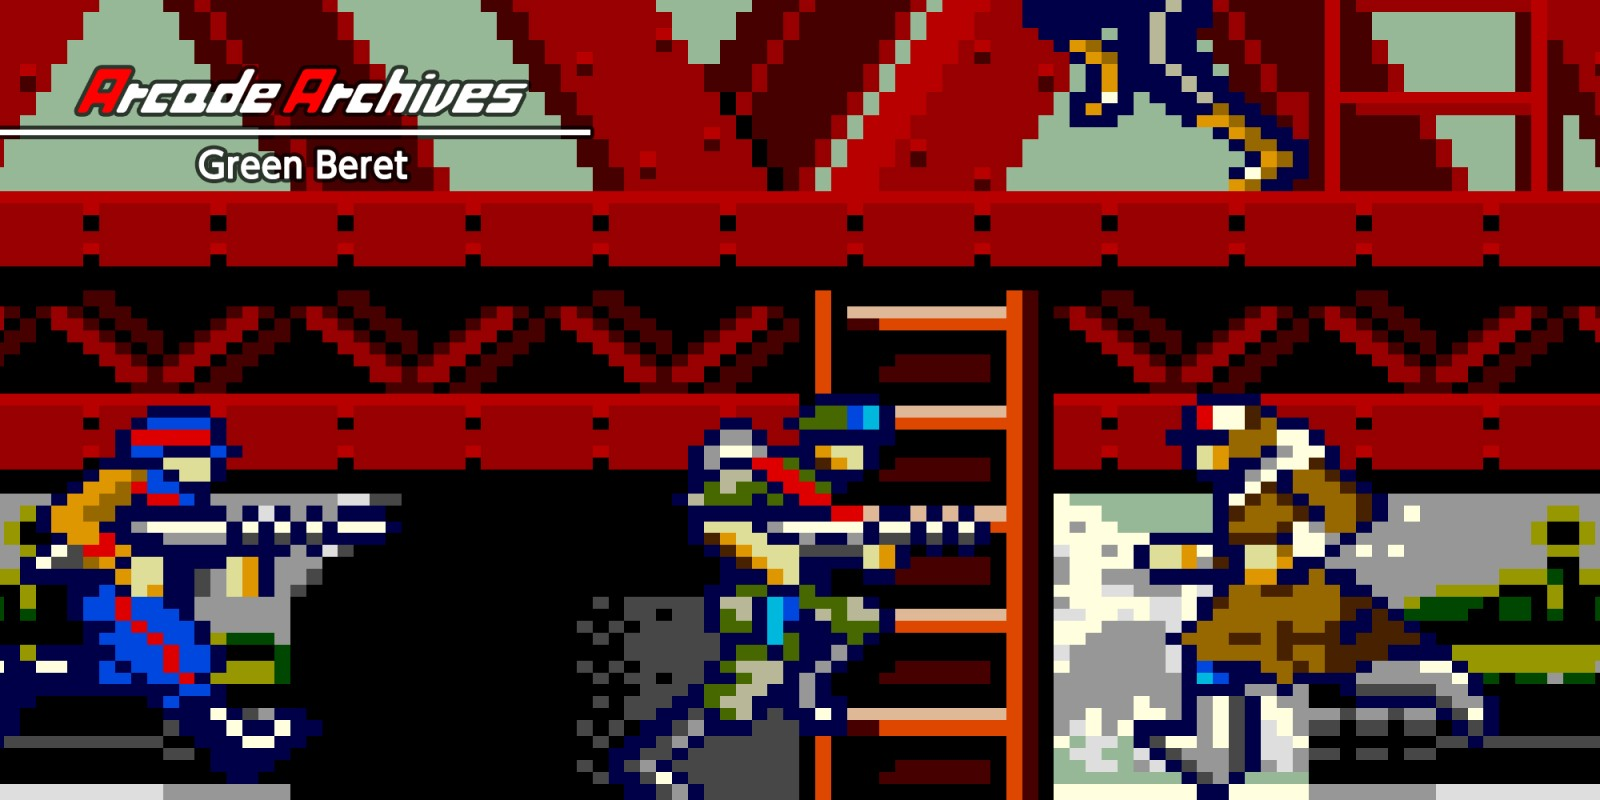 Arcade Archives Green Beret